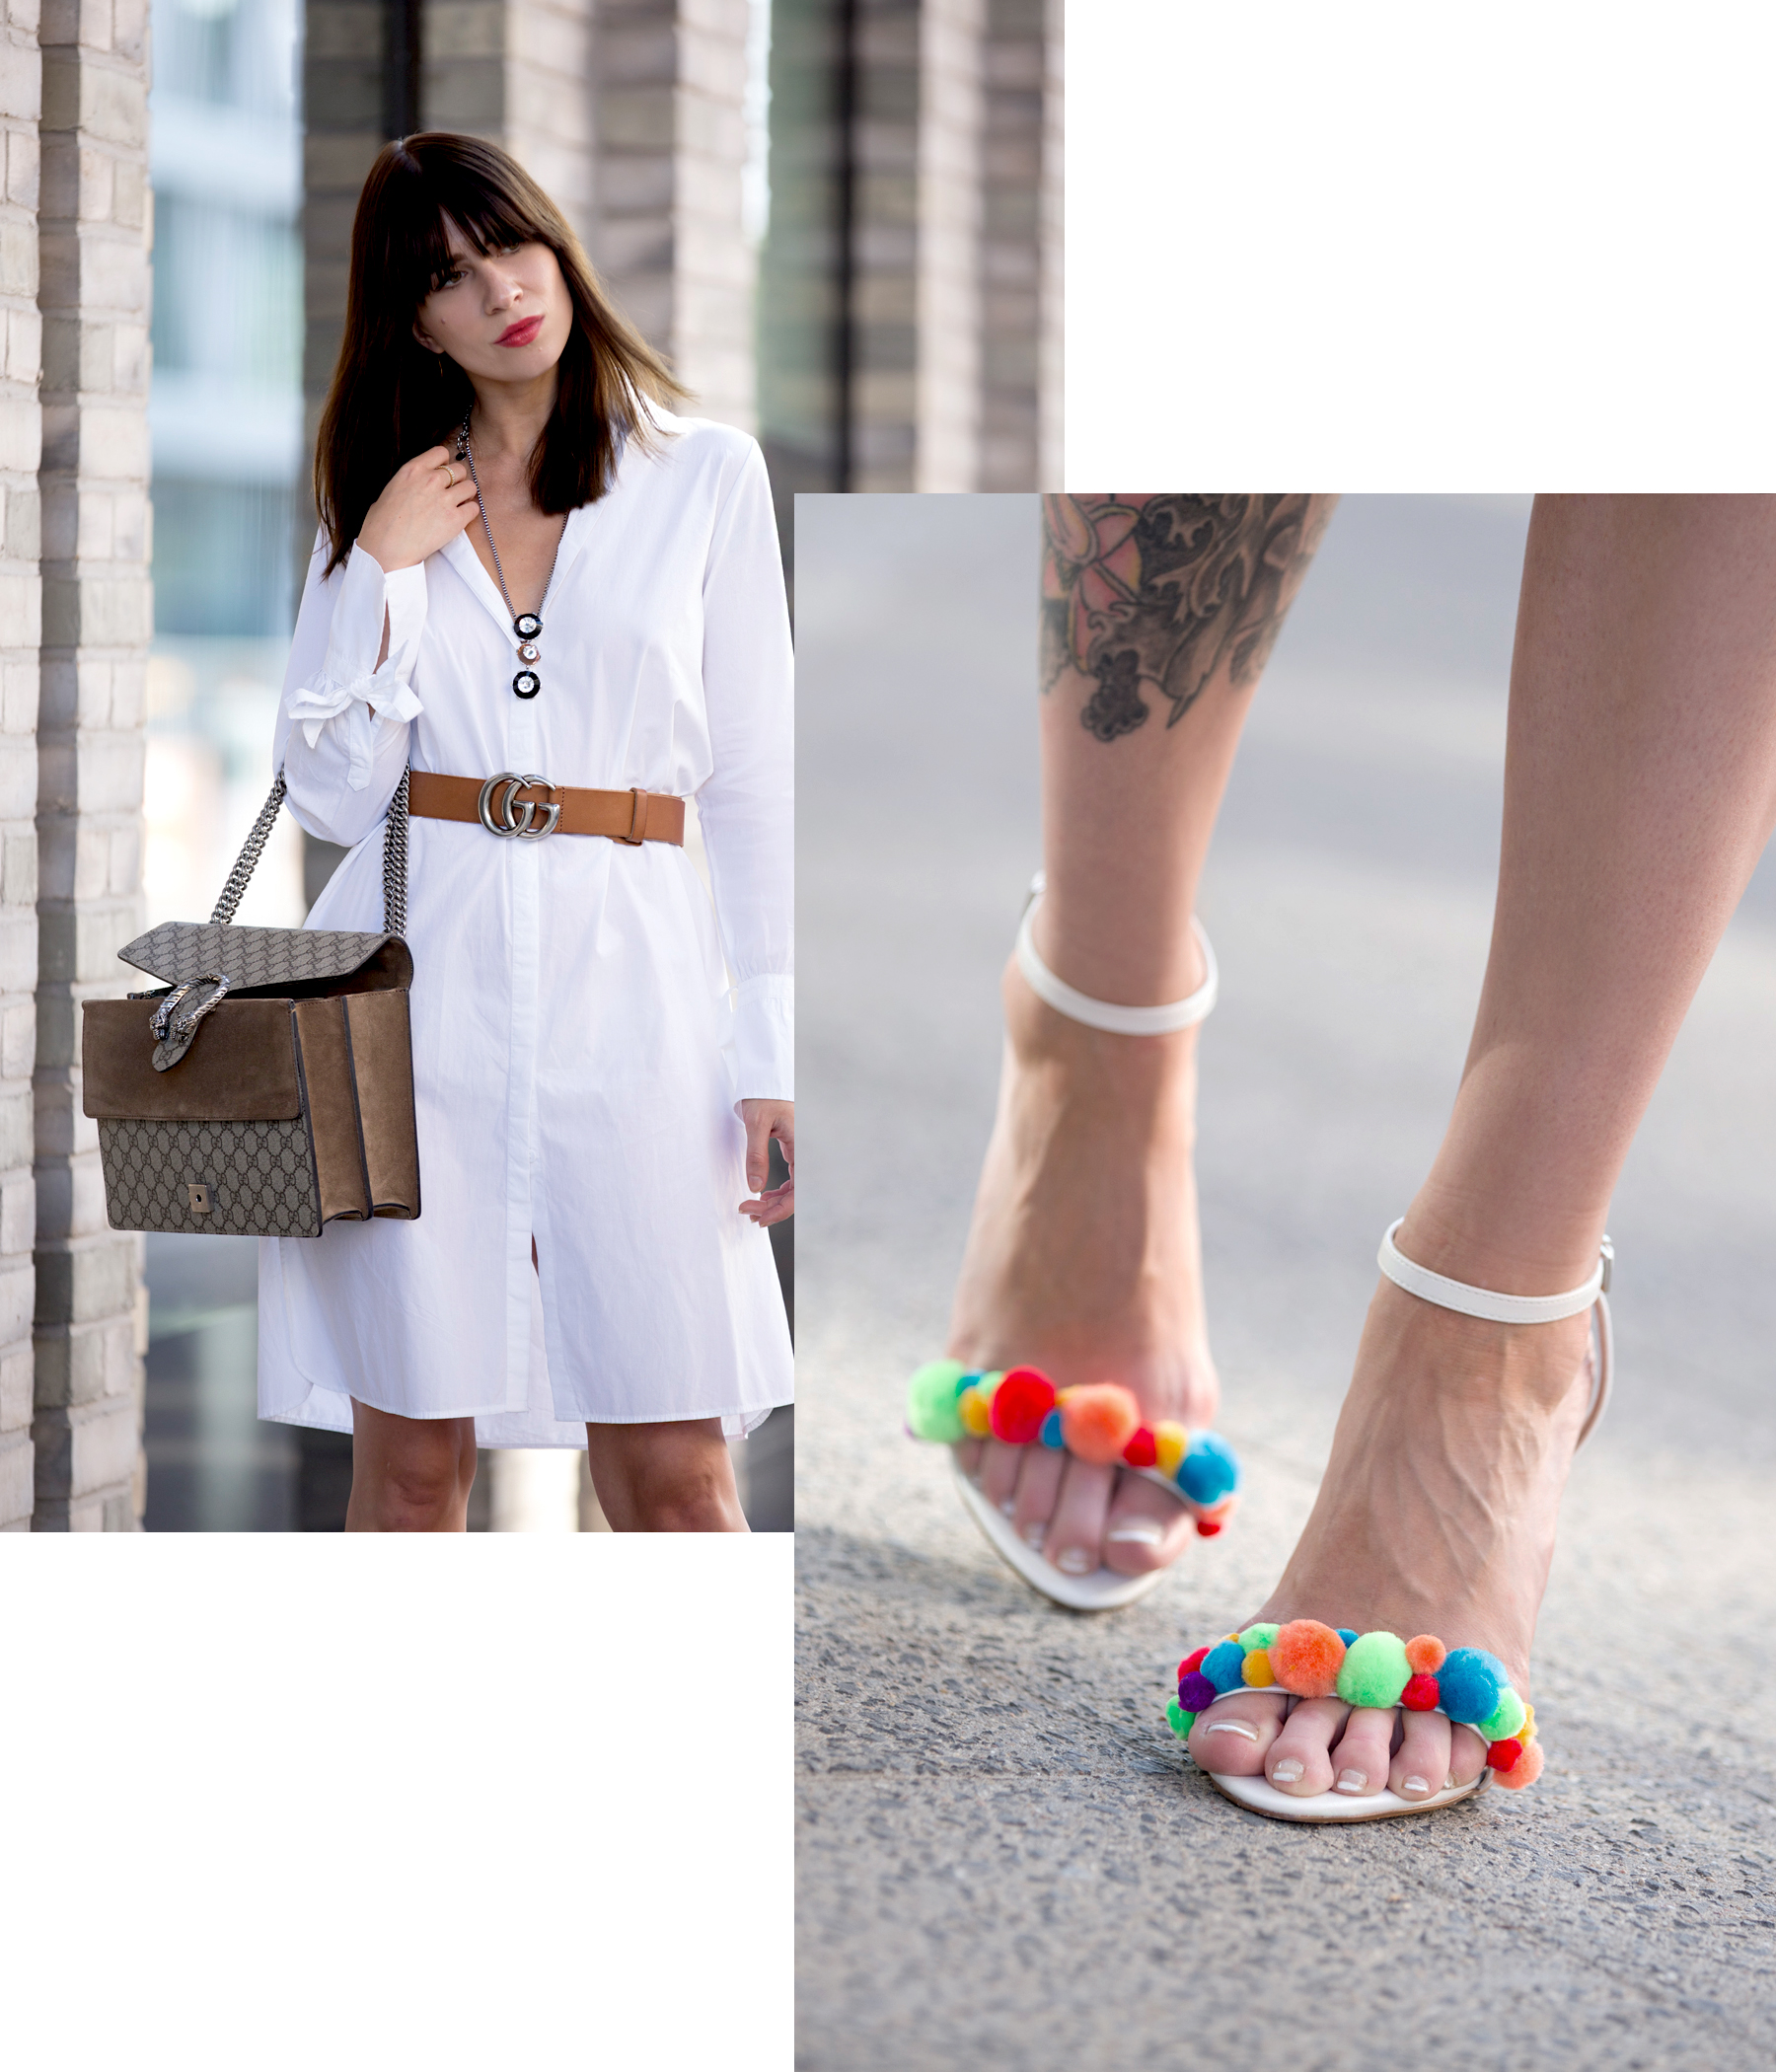 outfit white dress gucci belt dionysus bag pompom heels aquazzura diy blogger ootd fashionblogger summer streetstyle berlin bloggers cats & dogs modeblog ricarda schernus lifestyleblogger 7